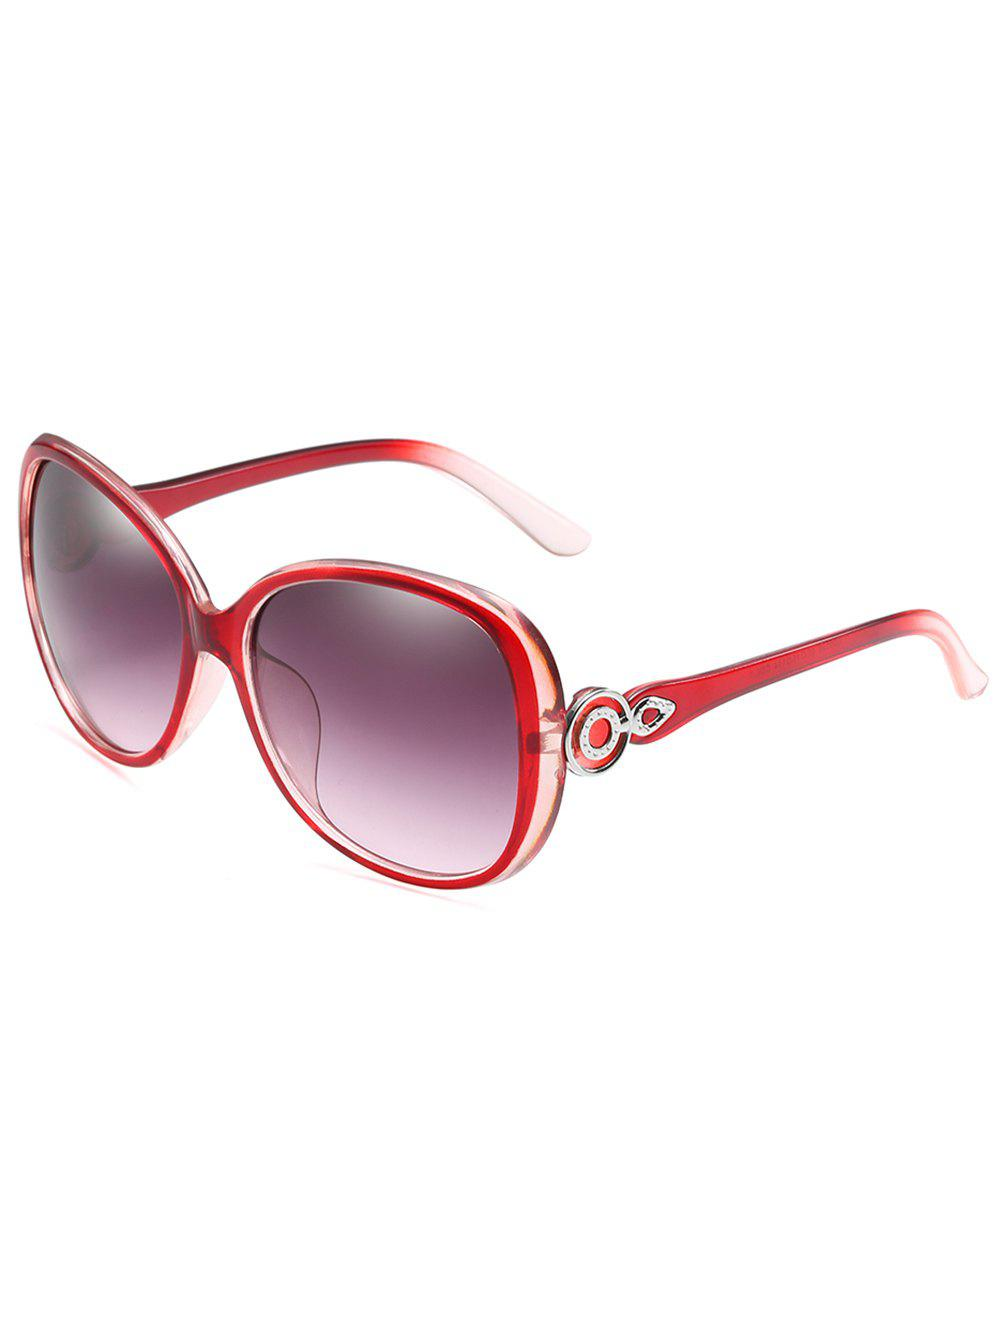 UV Protected Lenses Butterfly Sunglasses - LOVE RED